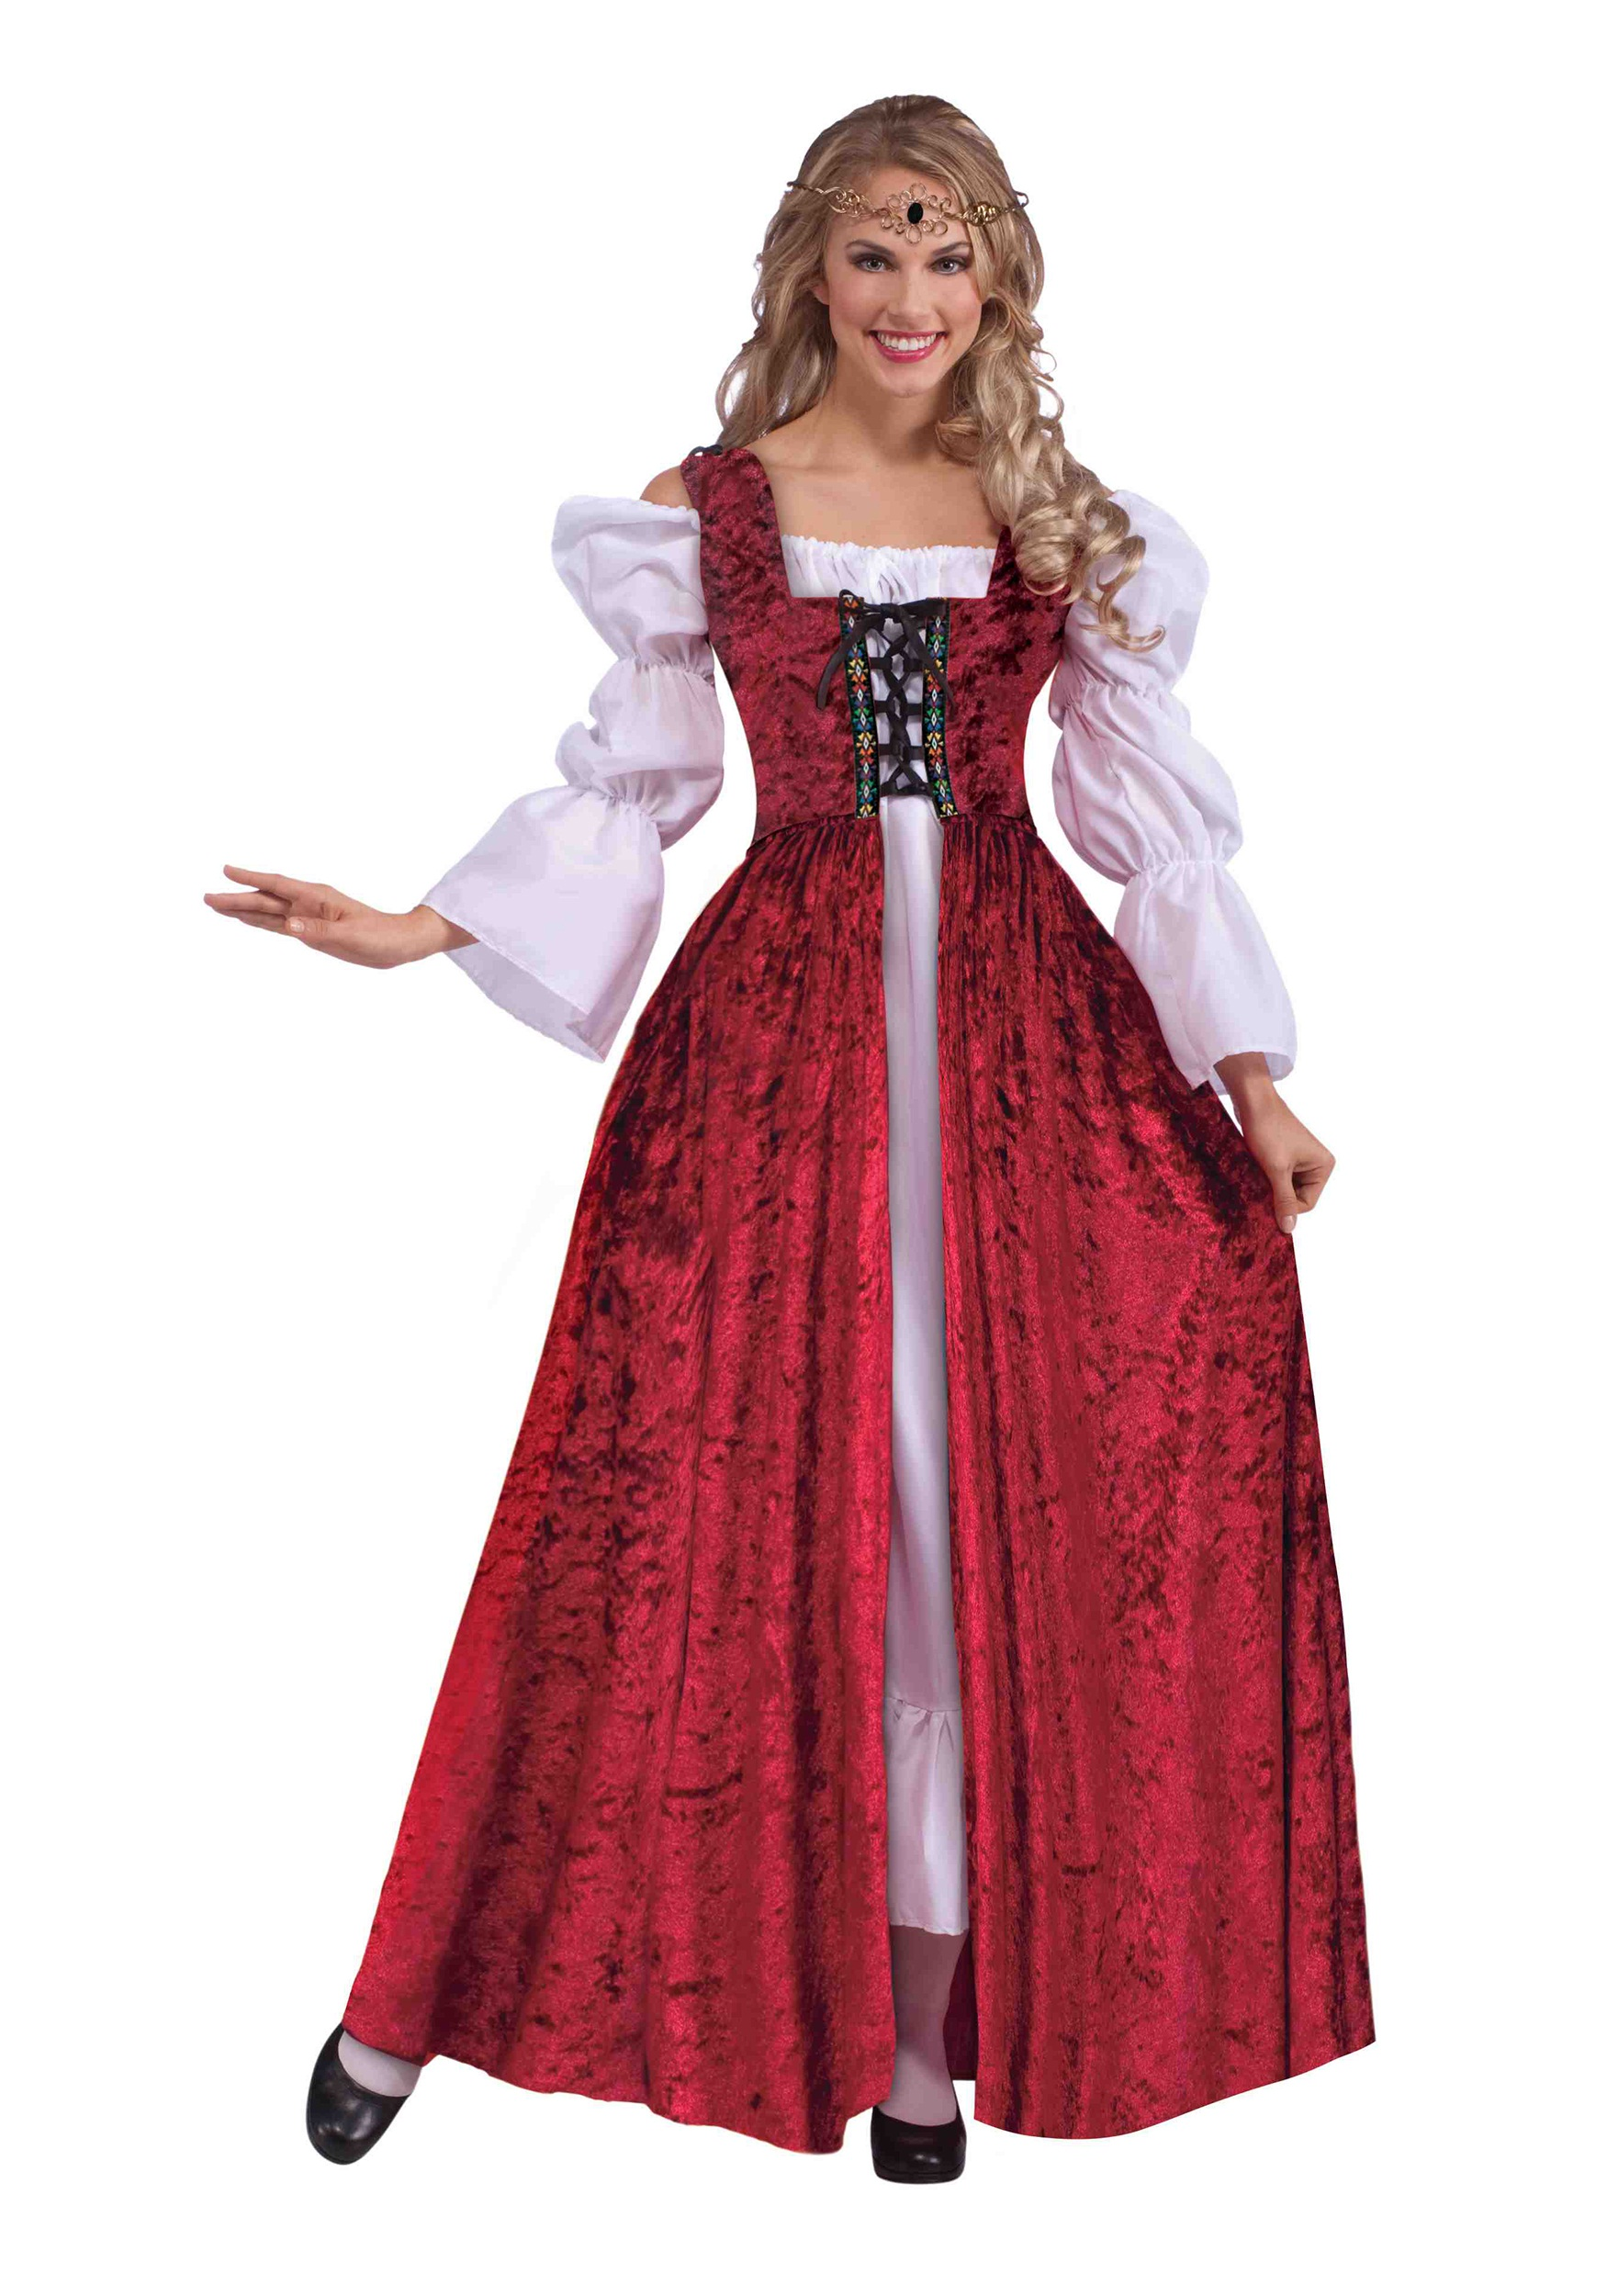 Medieval Laced Gown for Plus Size Women Costume | Medieval Princess Costumes